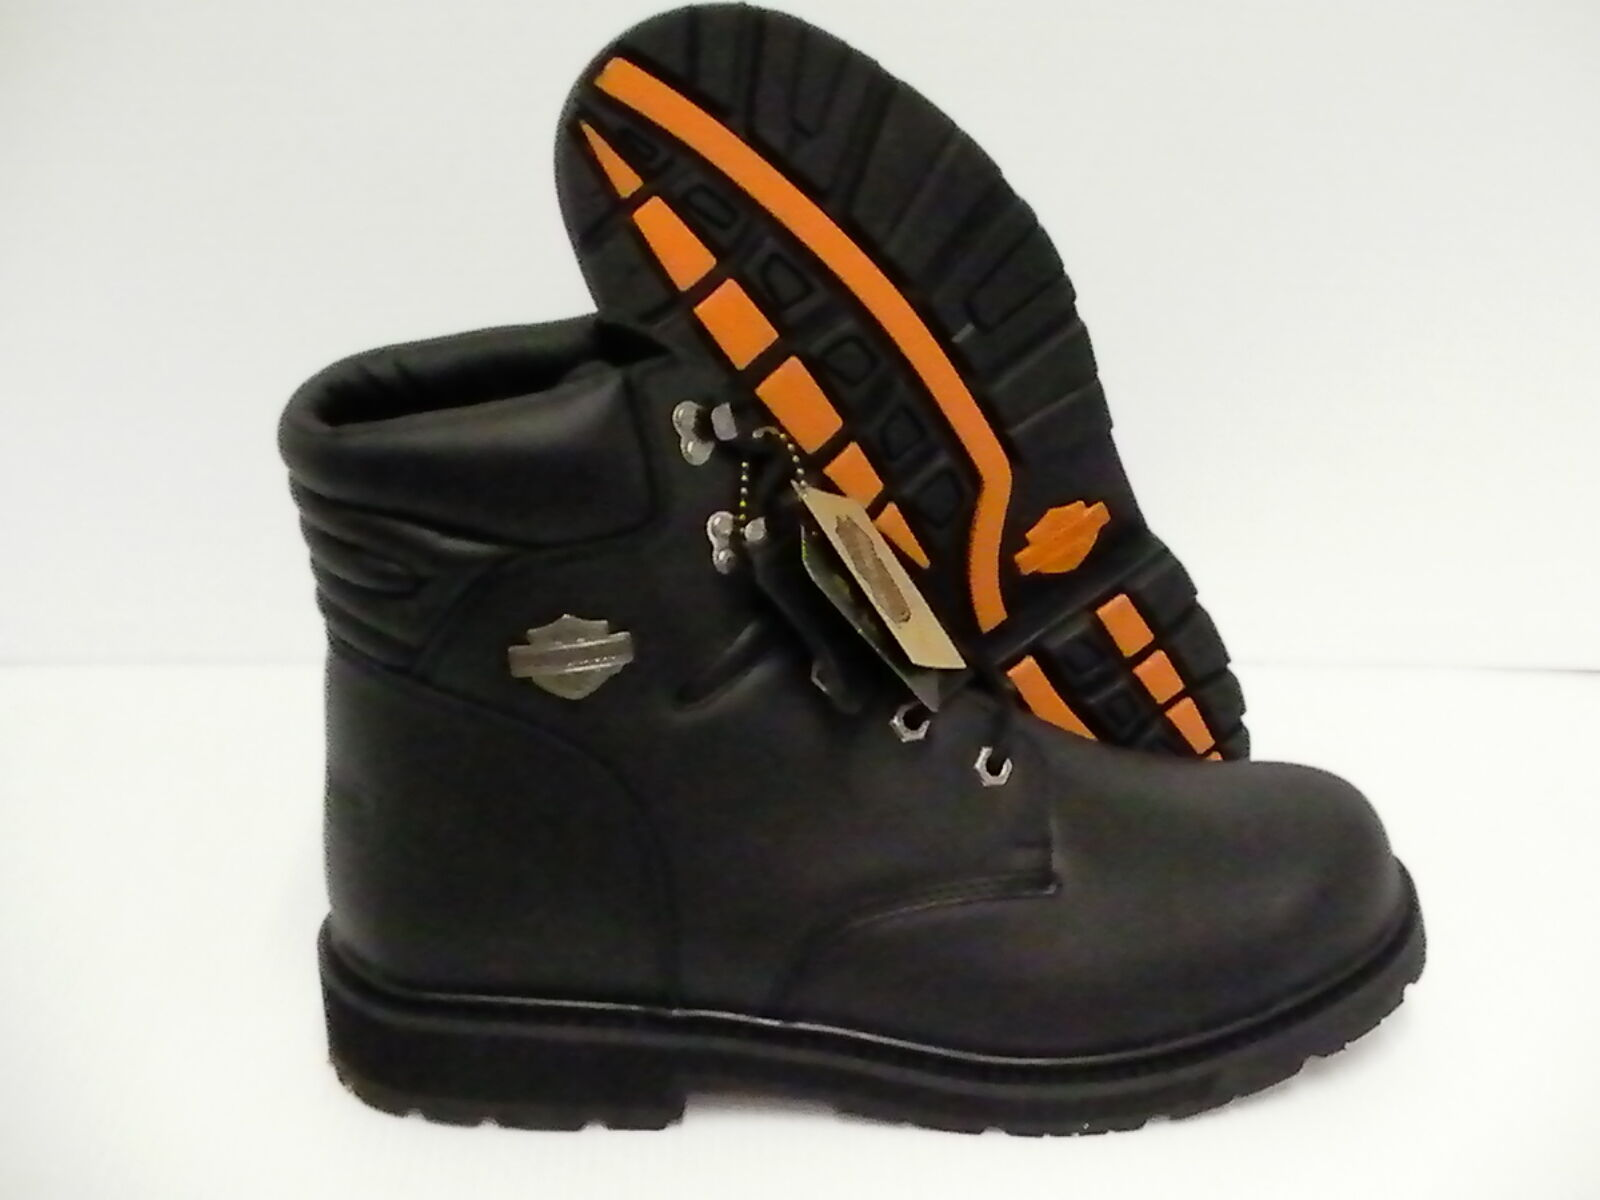 Harley davidson boots D94112 black sequoia plain toe riding size 10.5 us